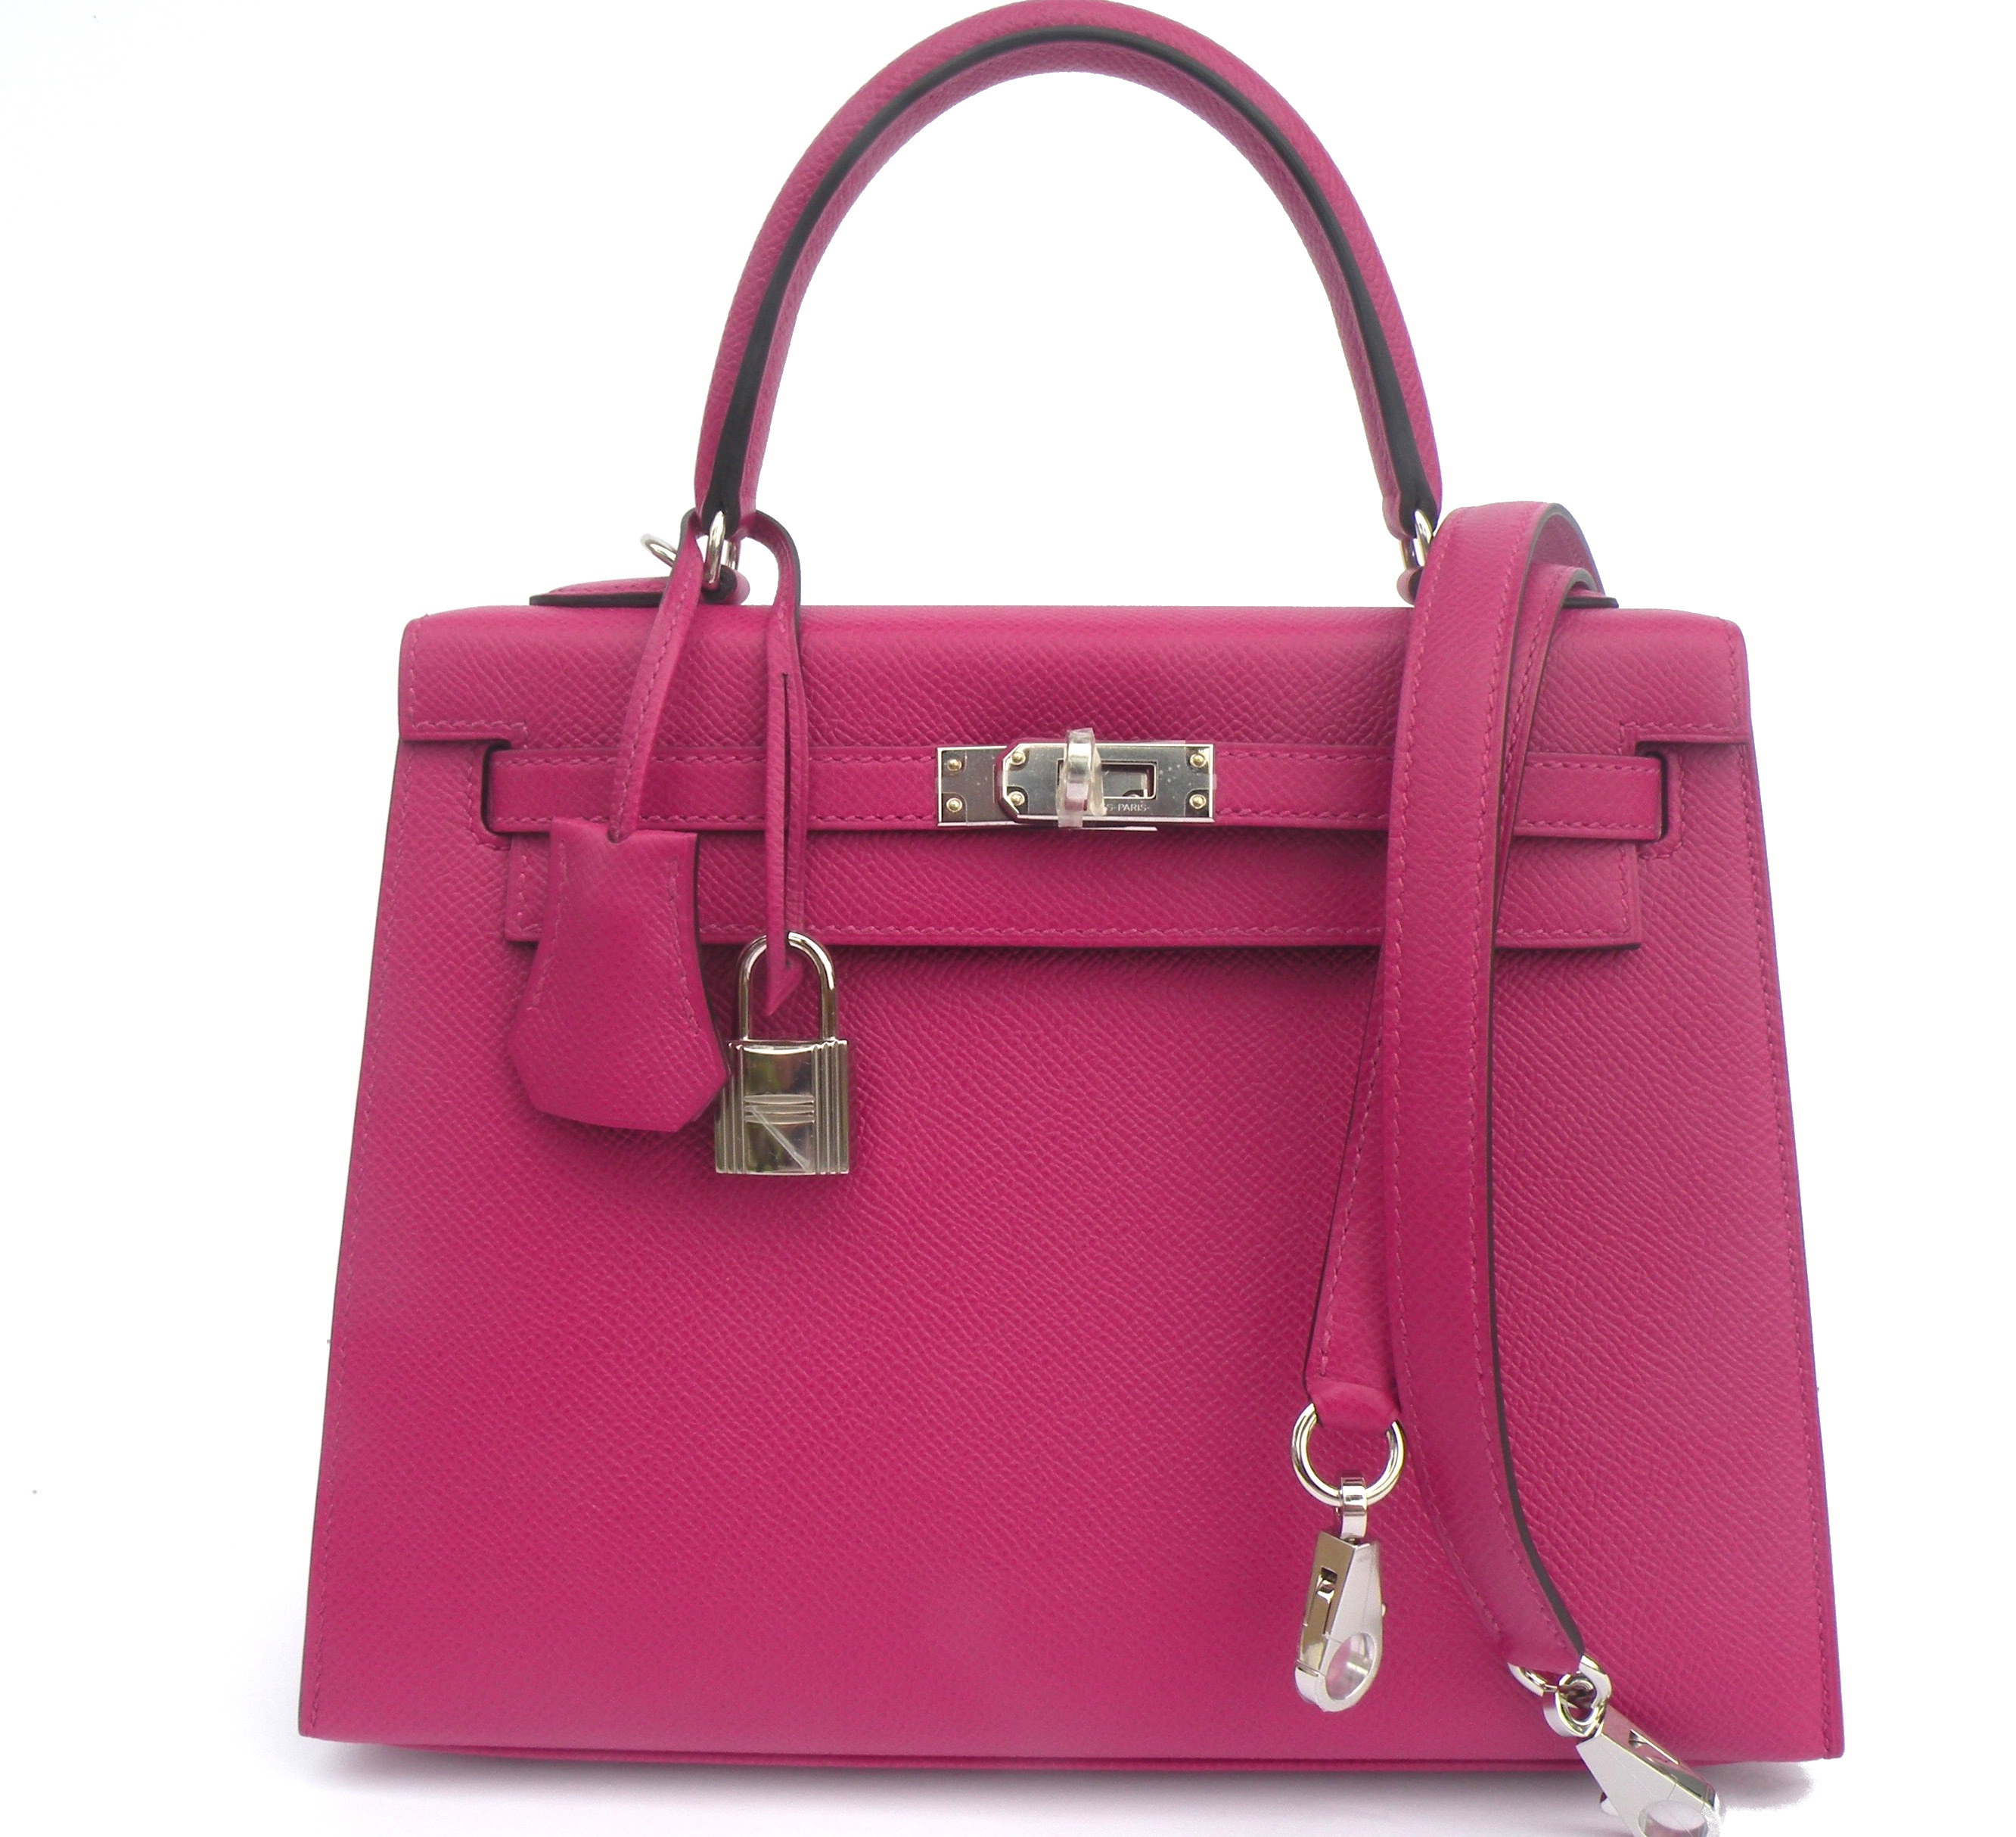 e6e18e94e7 Discount Kelly Bag 25cm Rose Pourpre Pink Epsom Palladium Hardware ...